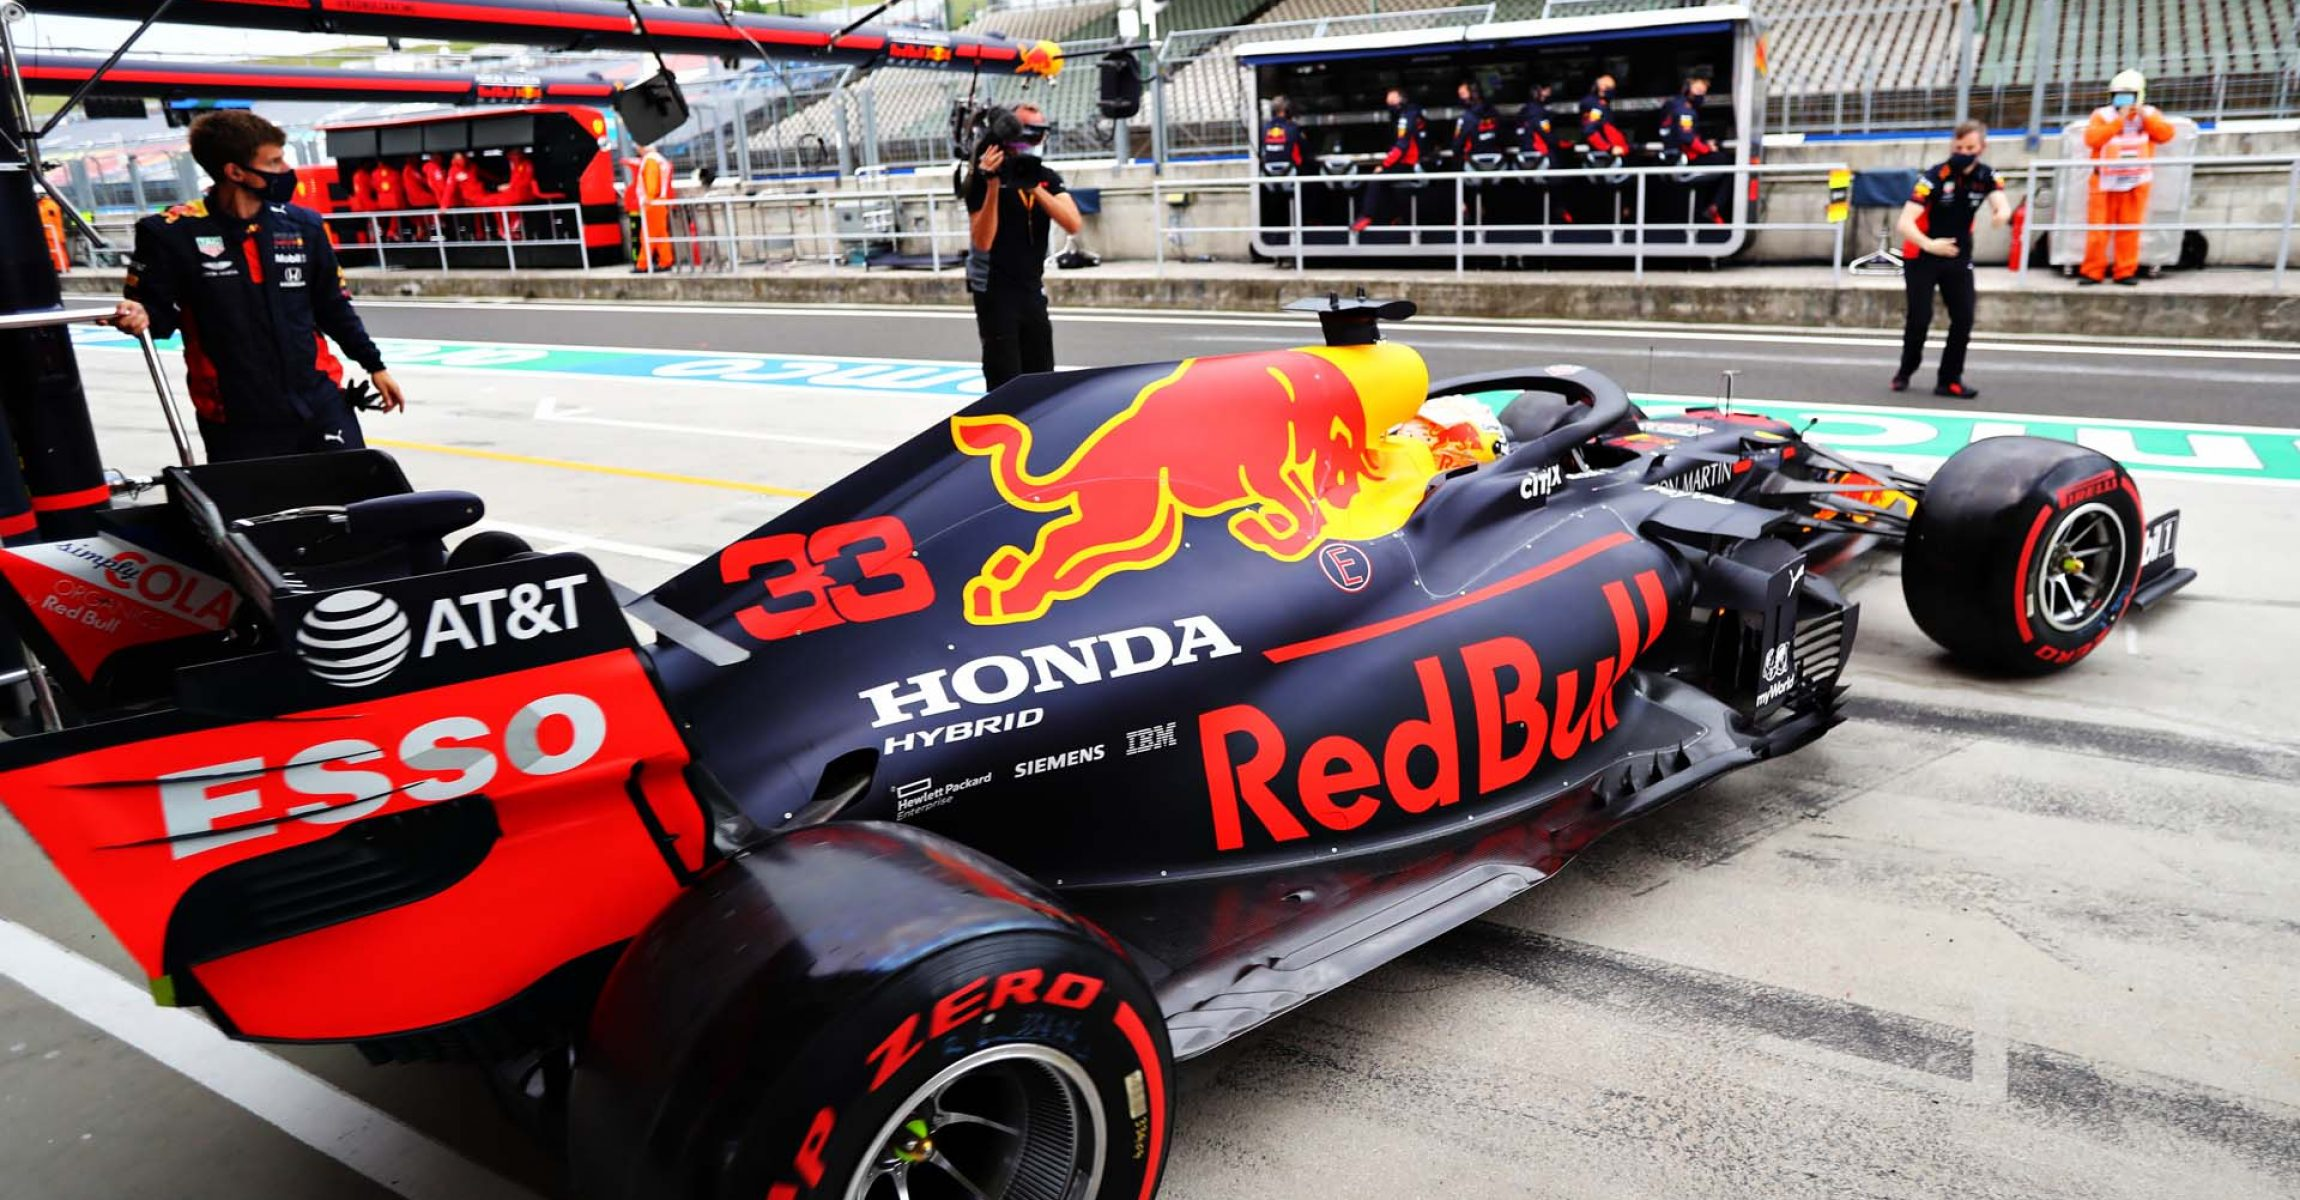 BUDAPEST, HUNGARY - JULY 18: Max Verstappen of the Netherlands driving the (33) Aston Martin Red Bull Racing RB16 leaves the garage during qualifying for the F1 Grand Prix of Hungary at Hungaroring on July 18, 2020 in Budapest, Hungary. (Photo by Getty Images/Getty Images) // Getty Images / Red Bull Content Pool  // AP-24NVQHQ1S2111 // Usage for editorial use only //